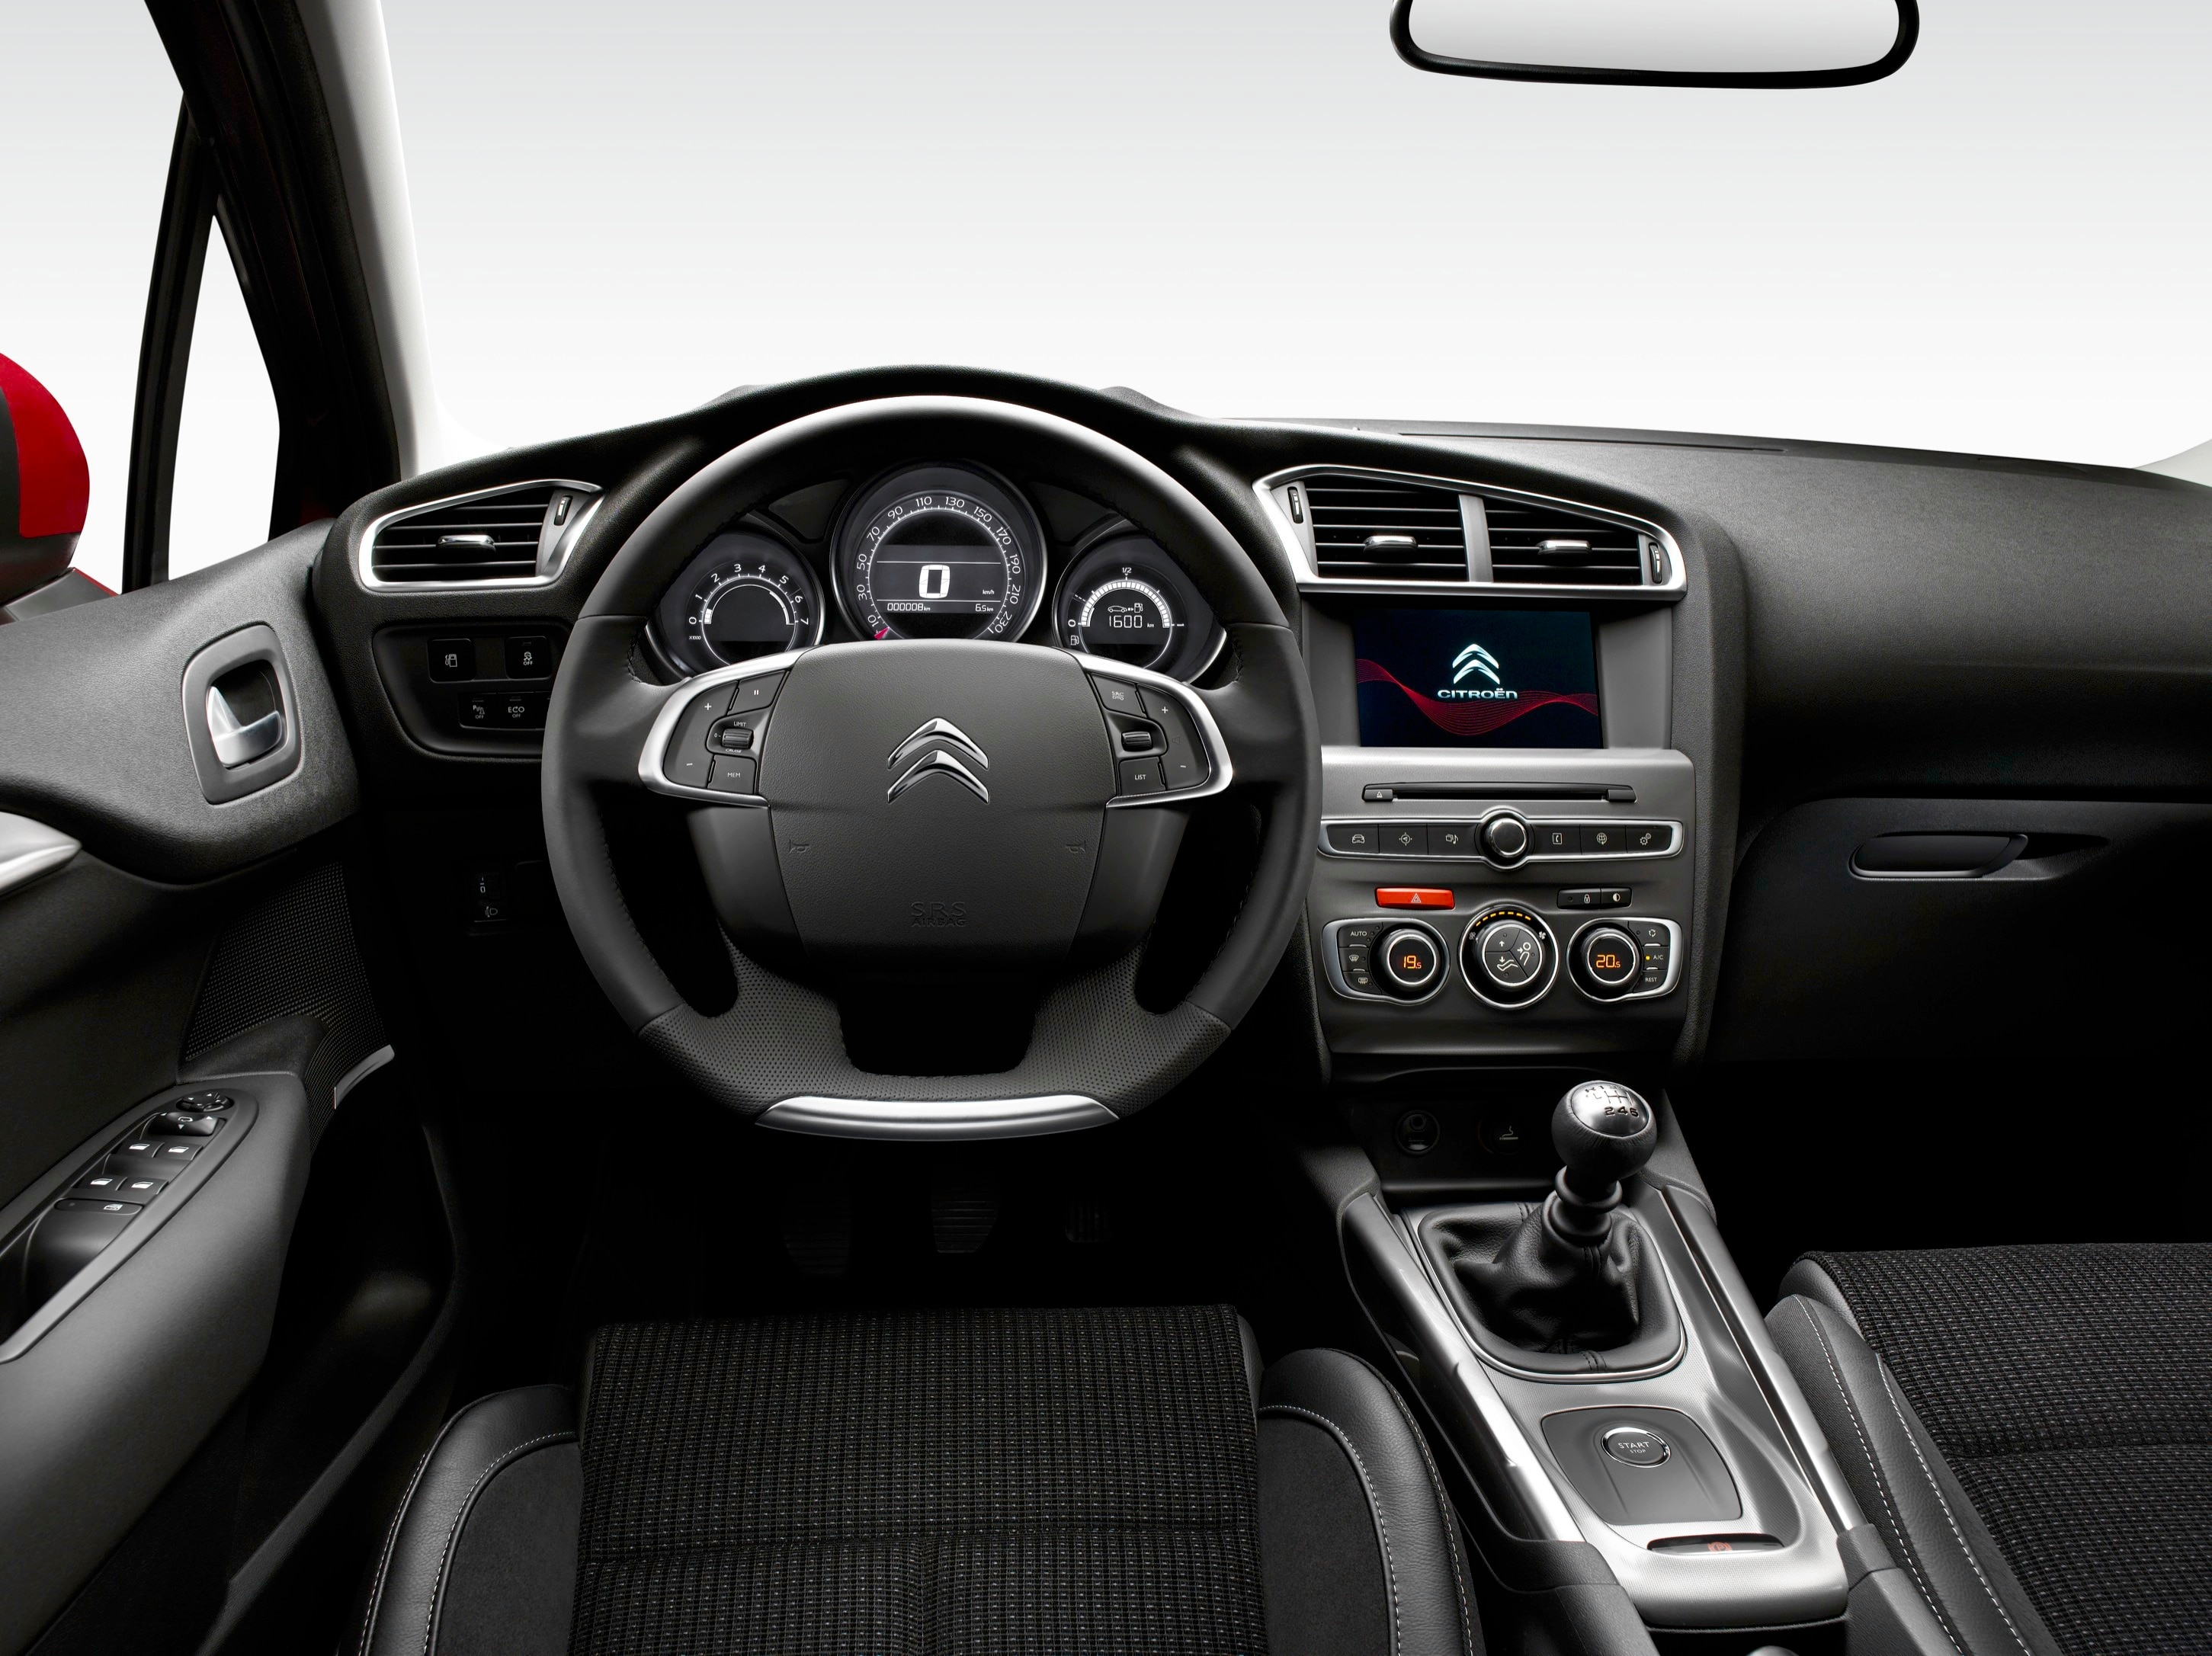 Citroen c4 interieur